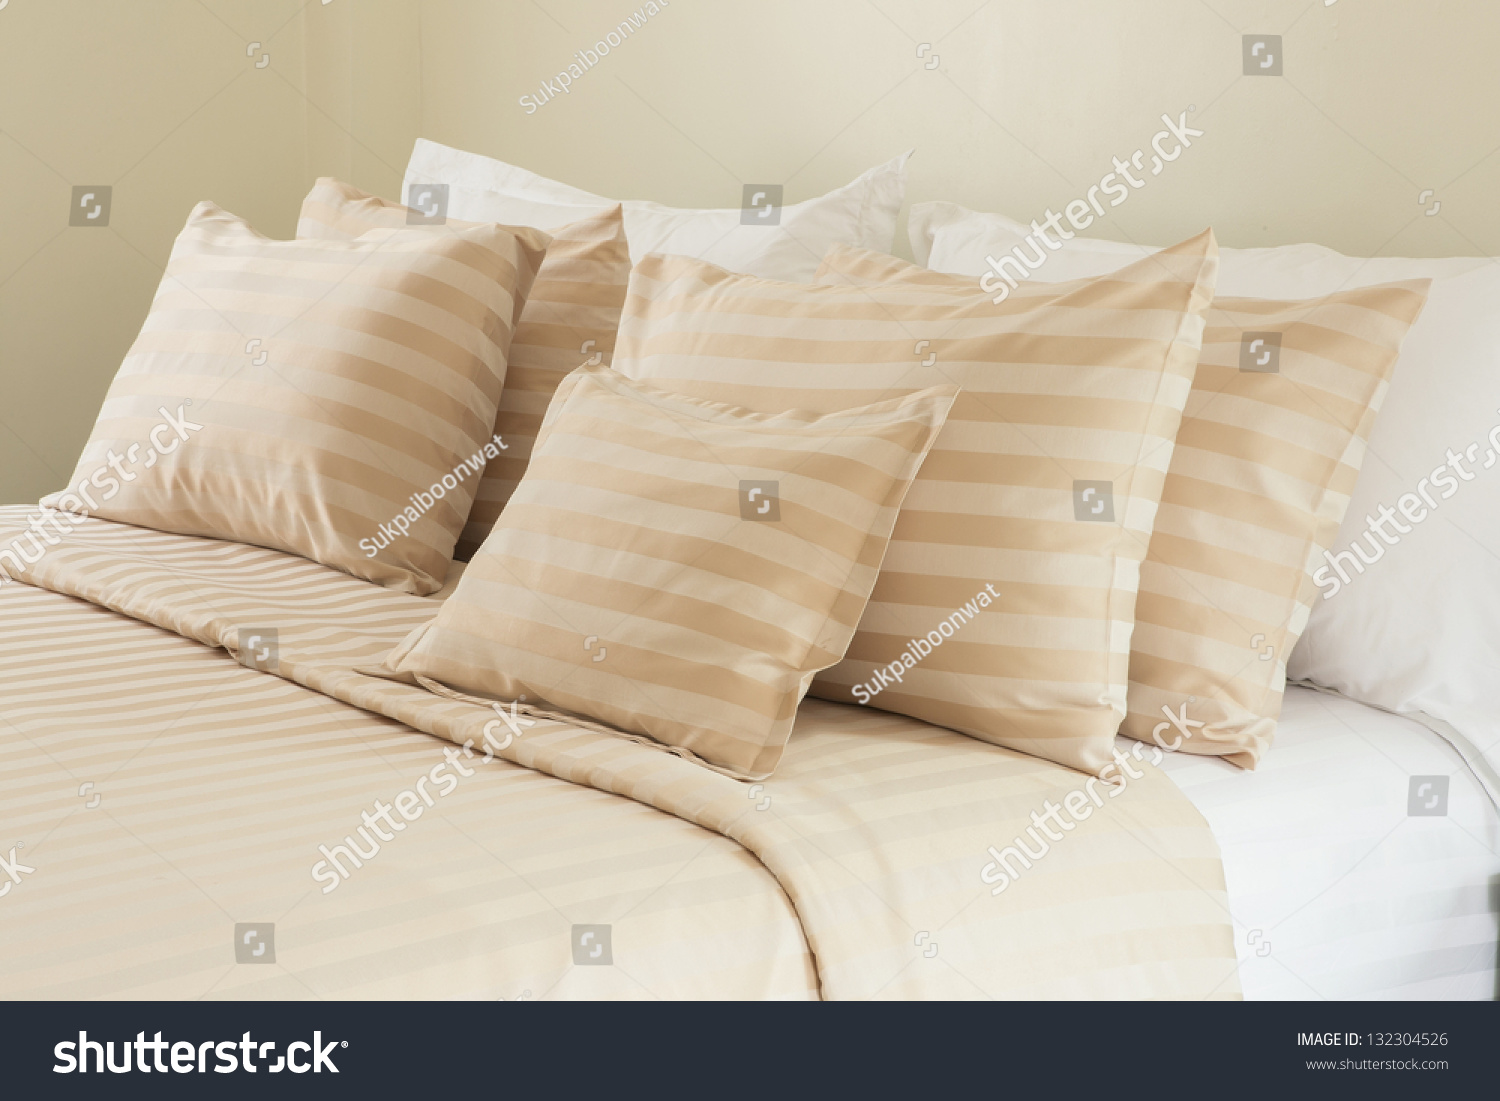 comfortable soft pillows on bed stock photo 132304526